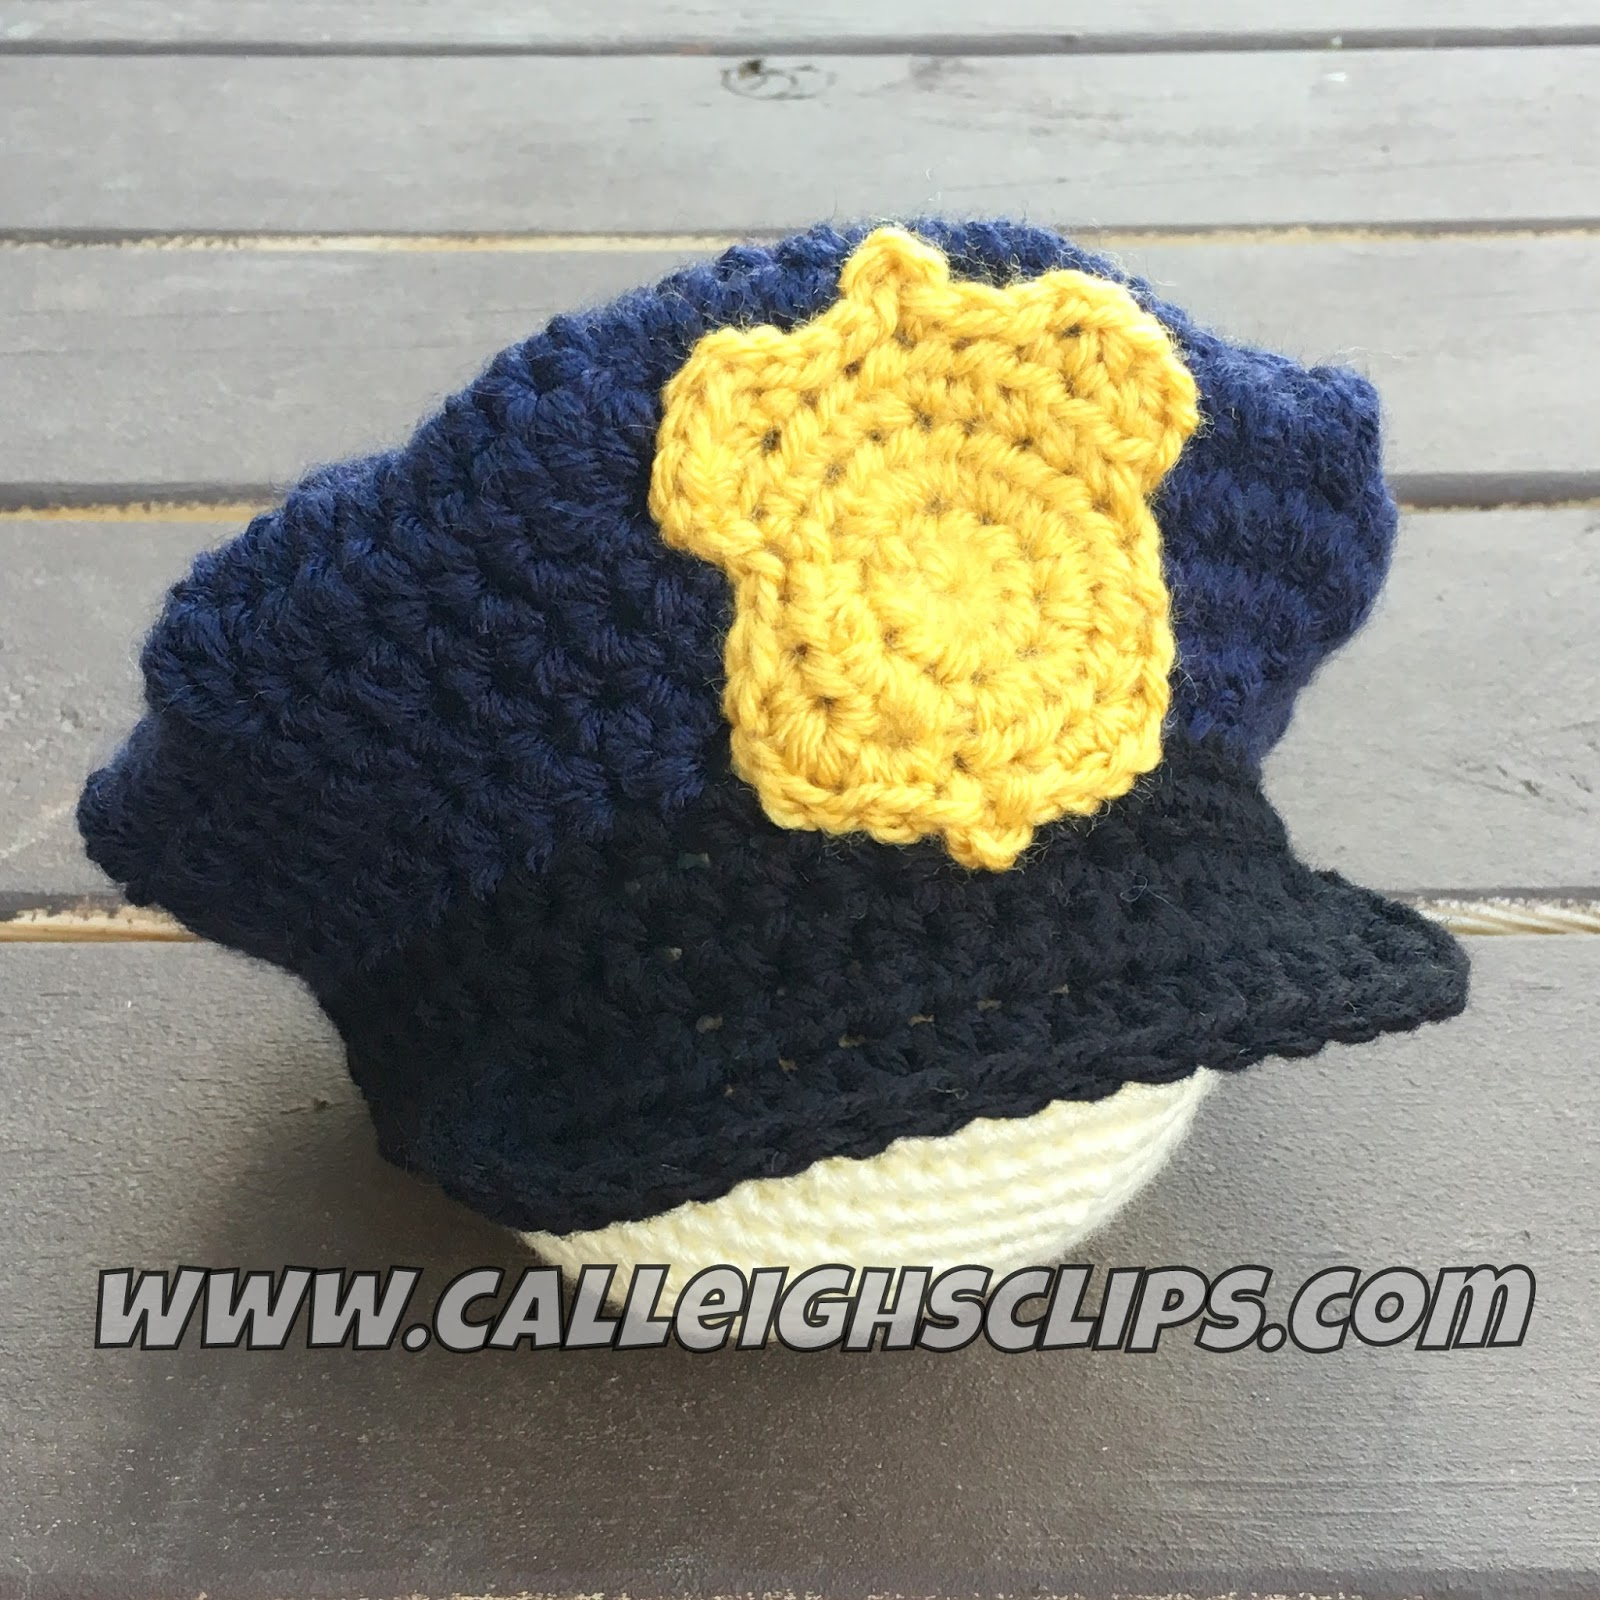 Calleigh\'s Clips & Crochet Creations: Police Officer Crochet Hat and ...